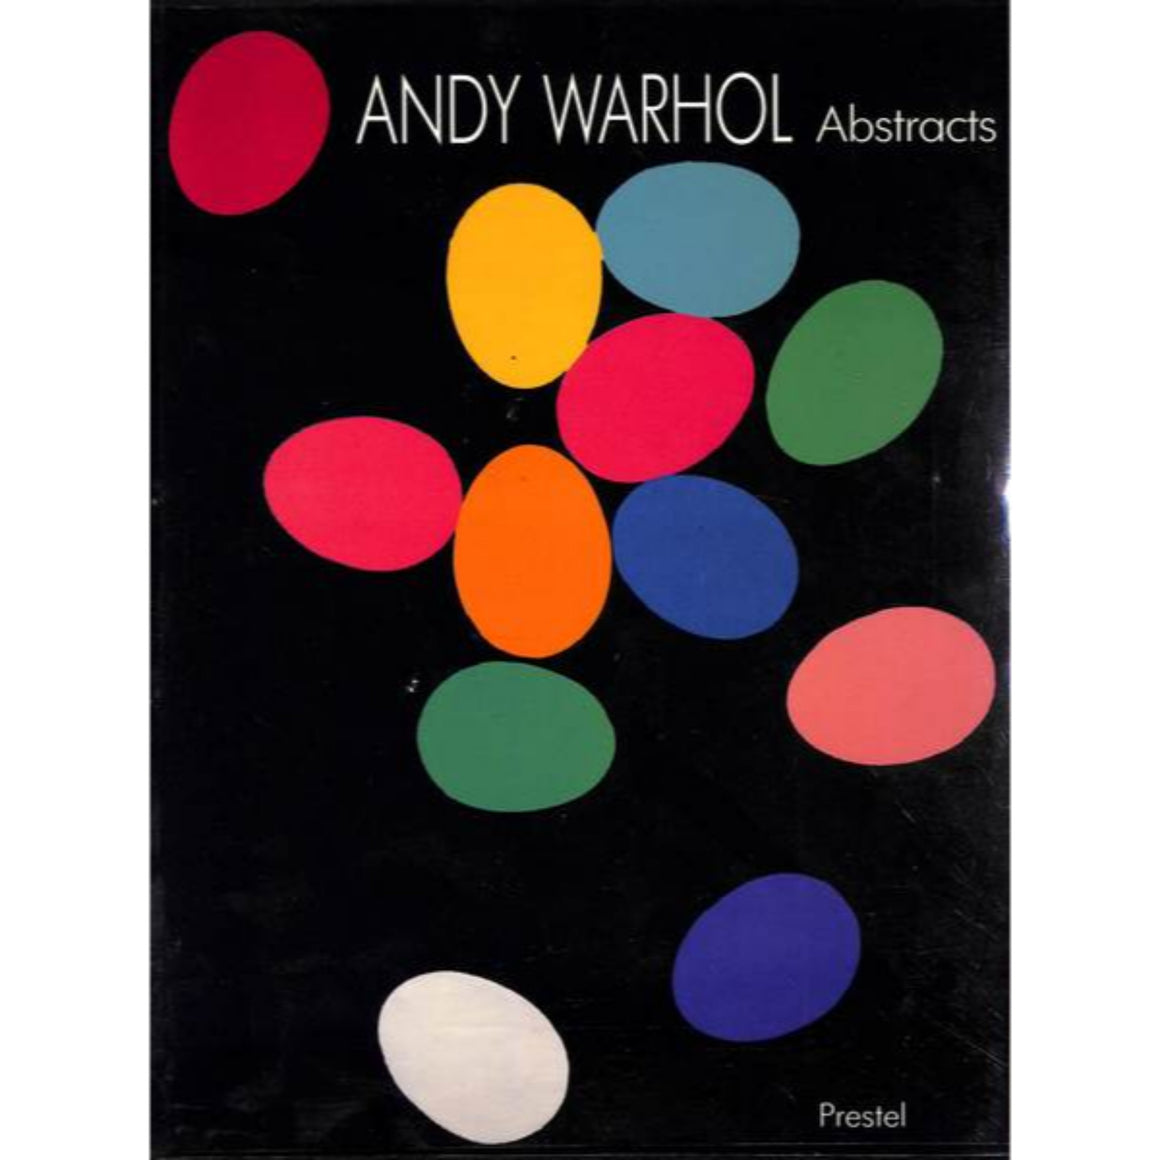 """Andy Warhol Abstracts"" 1993 Edited by Thomas Kellein"